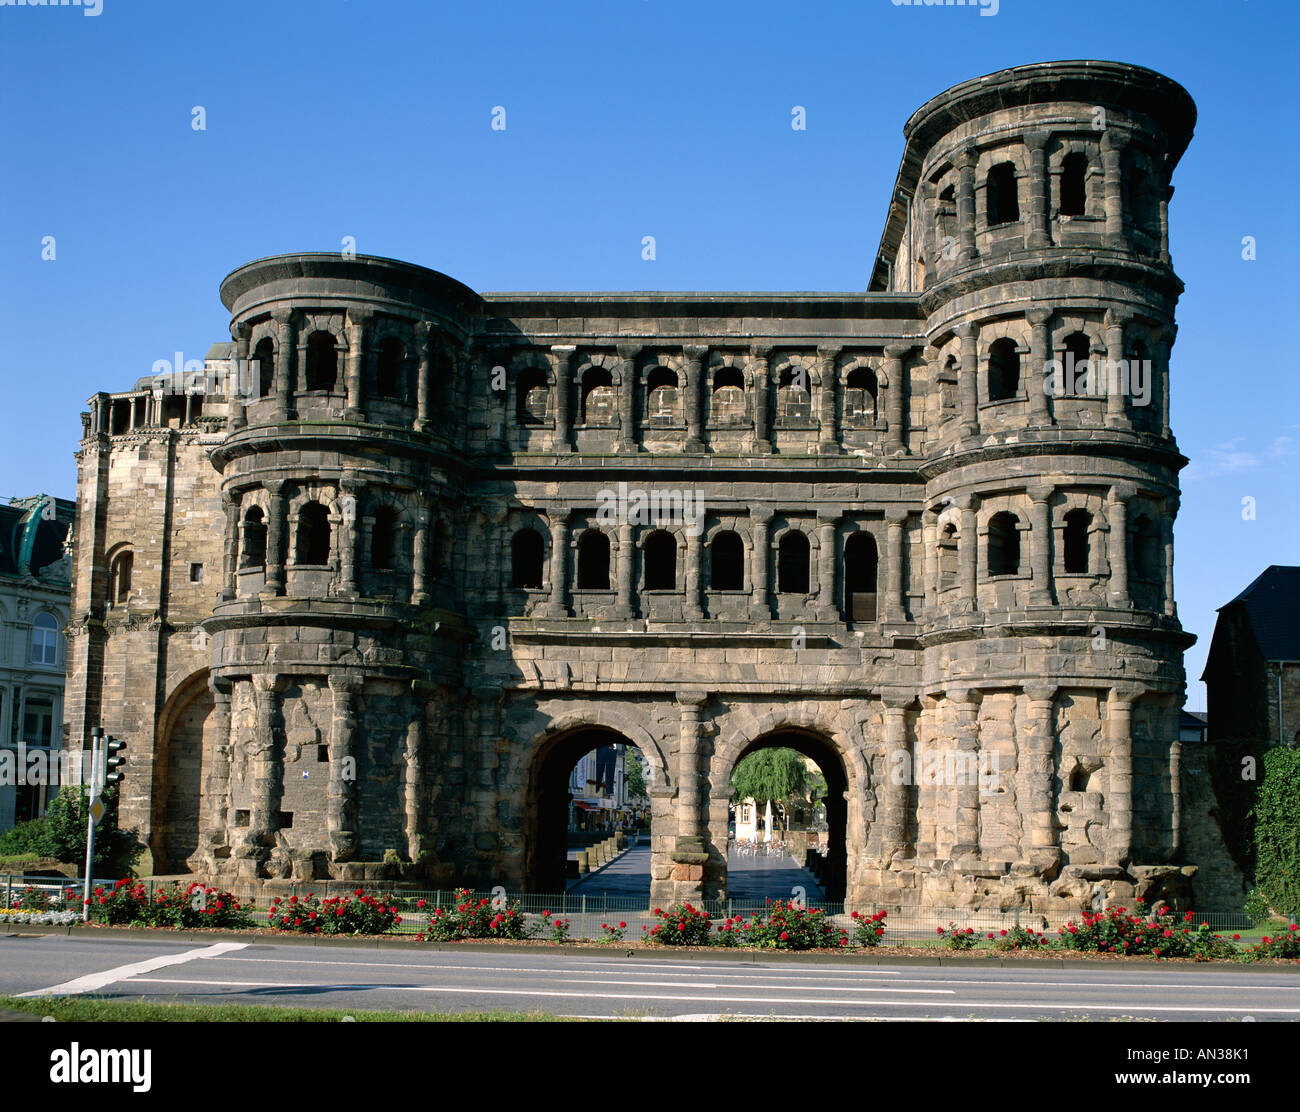 The Black Gate (Porta Nigra), Trier, Rhineland / Mosel Valley, Germany Stock Photo